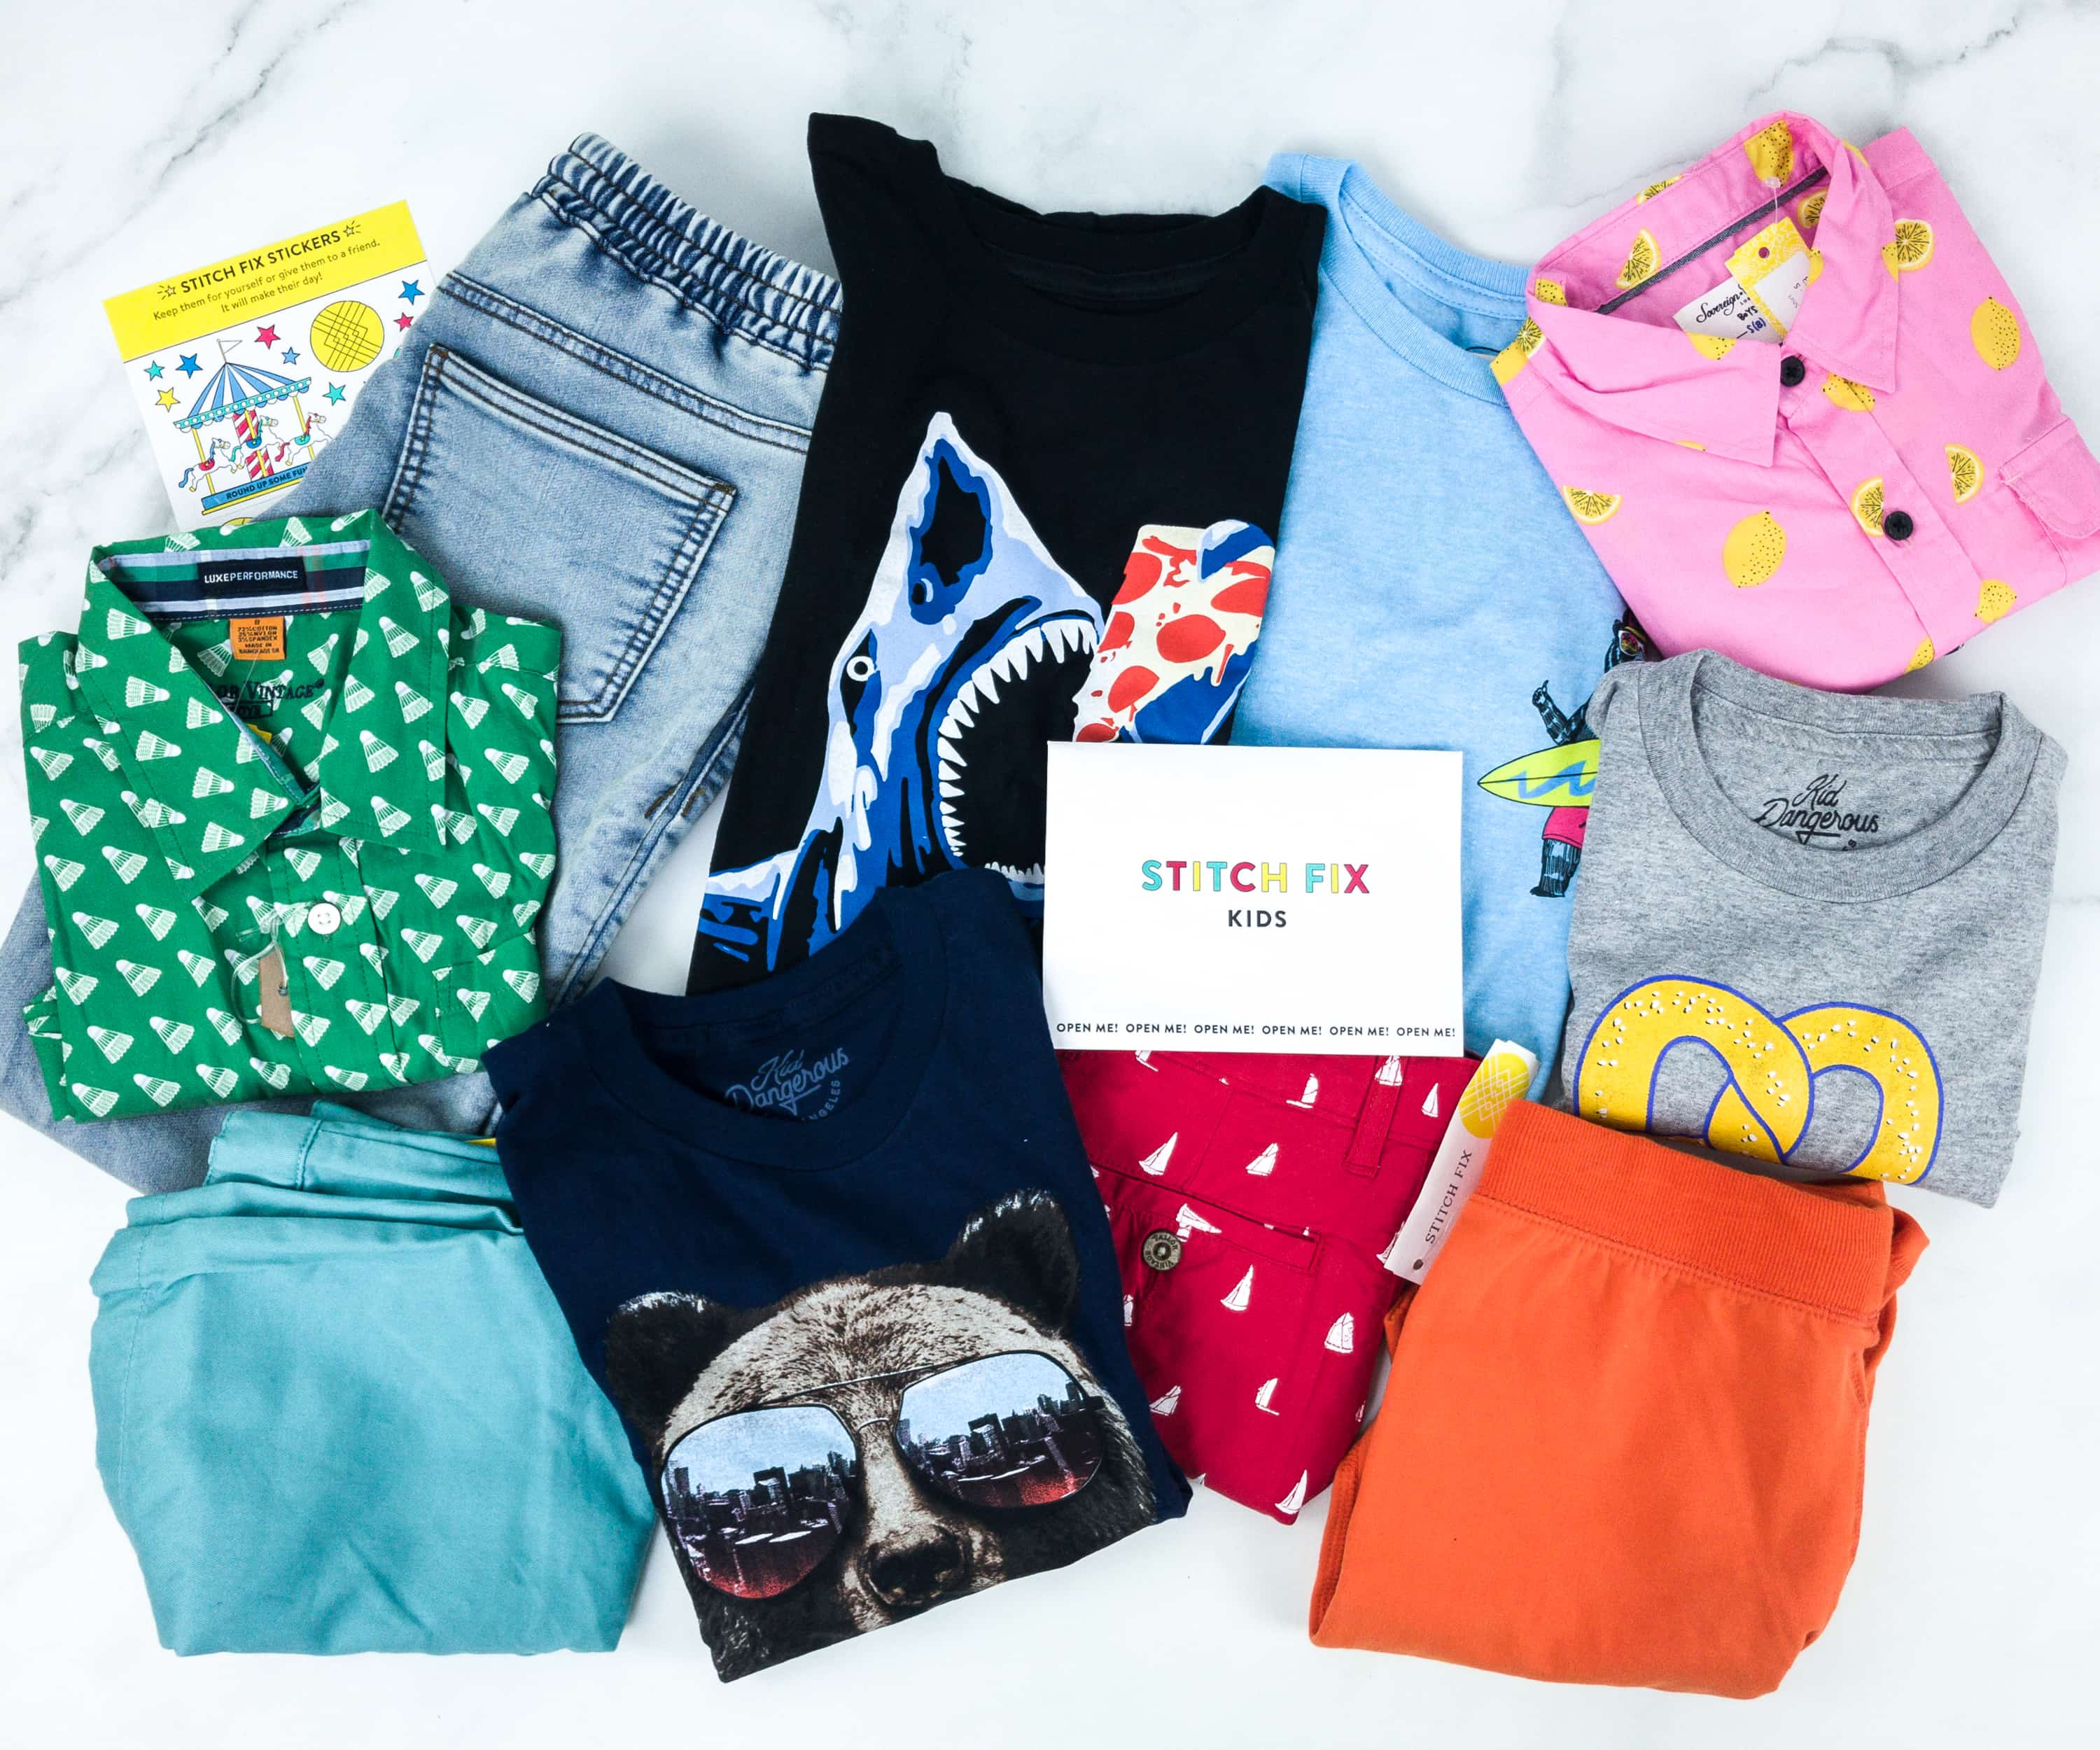 Stitch Fix Kids July 2019 Boys Review